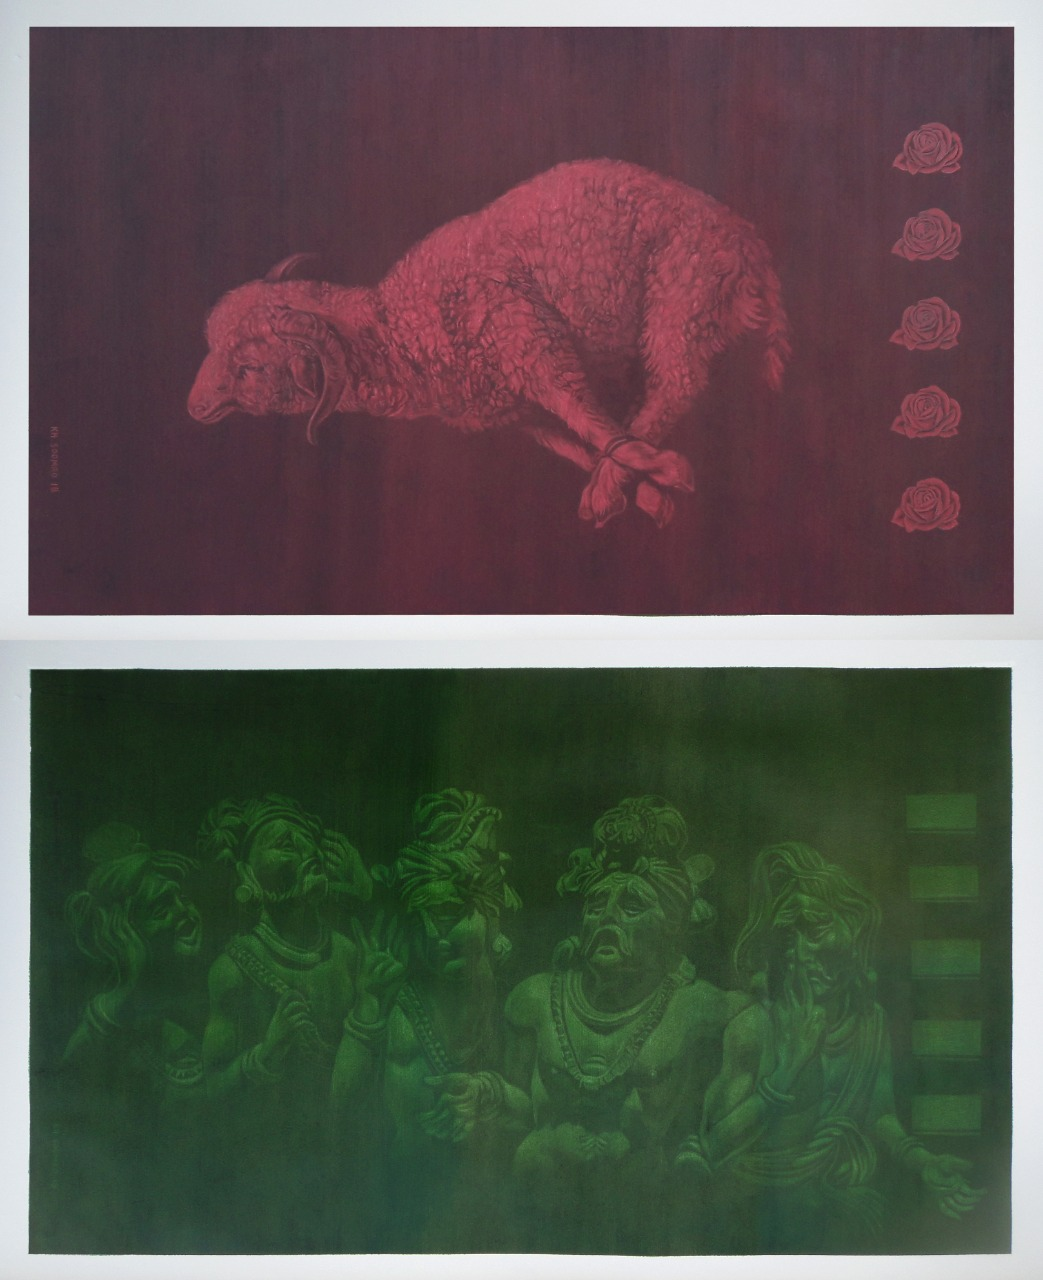 Khalid Soomro<br></br>Sacrifice (diptych)<br></br>Charcoal eraser drawing on montval sheet<br></br>30x30 inches